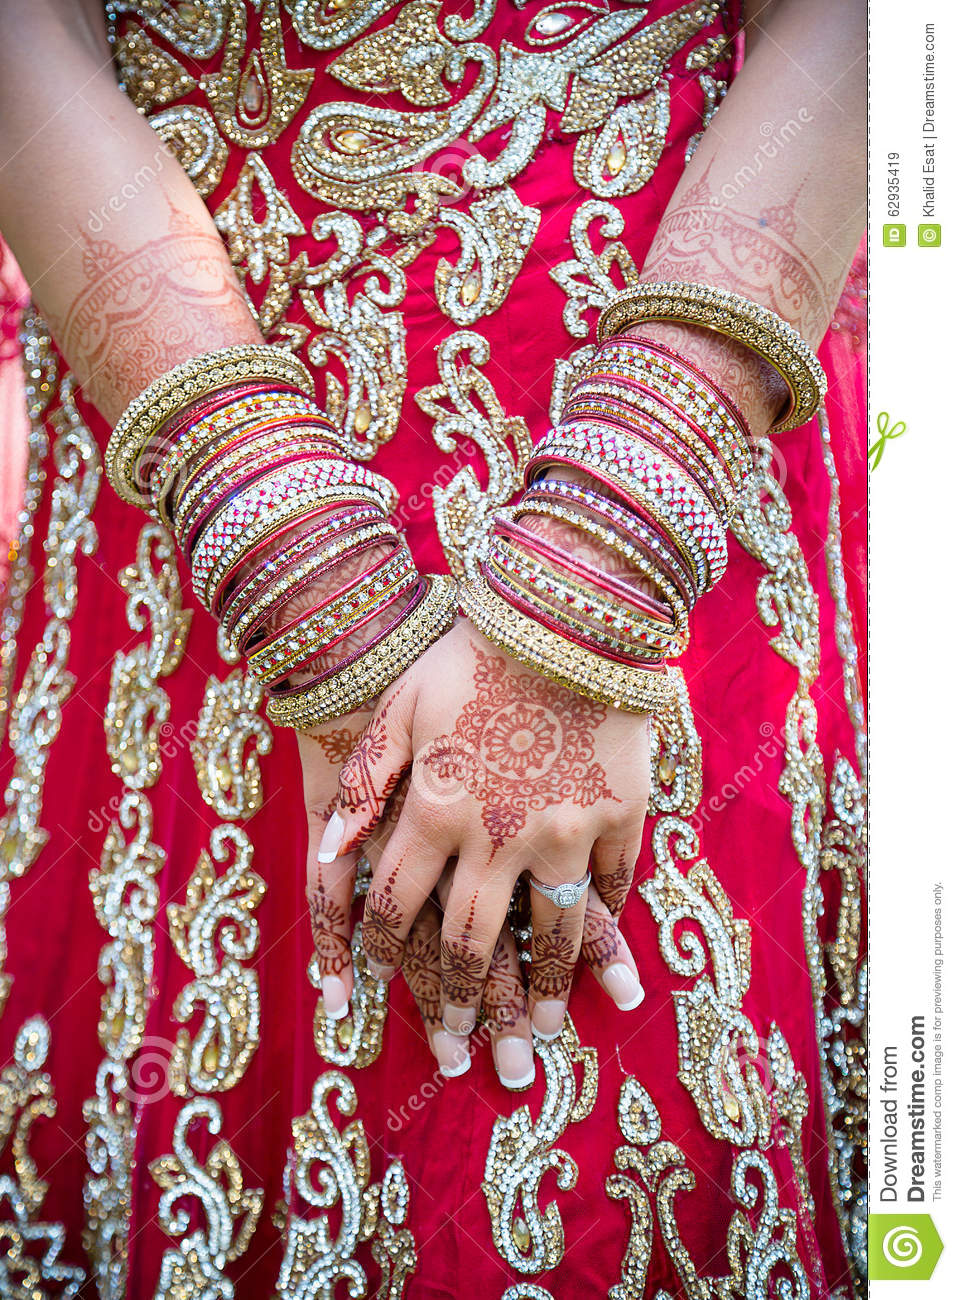 Bride S Hands And Bangles Stock Image Image Of Bride 62935419